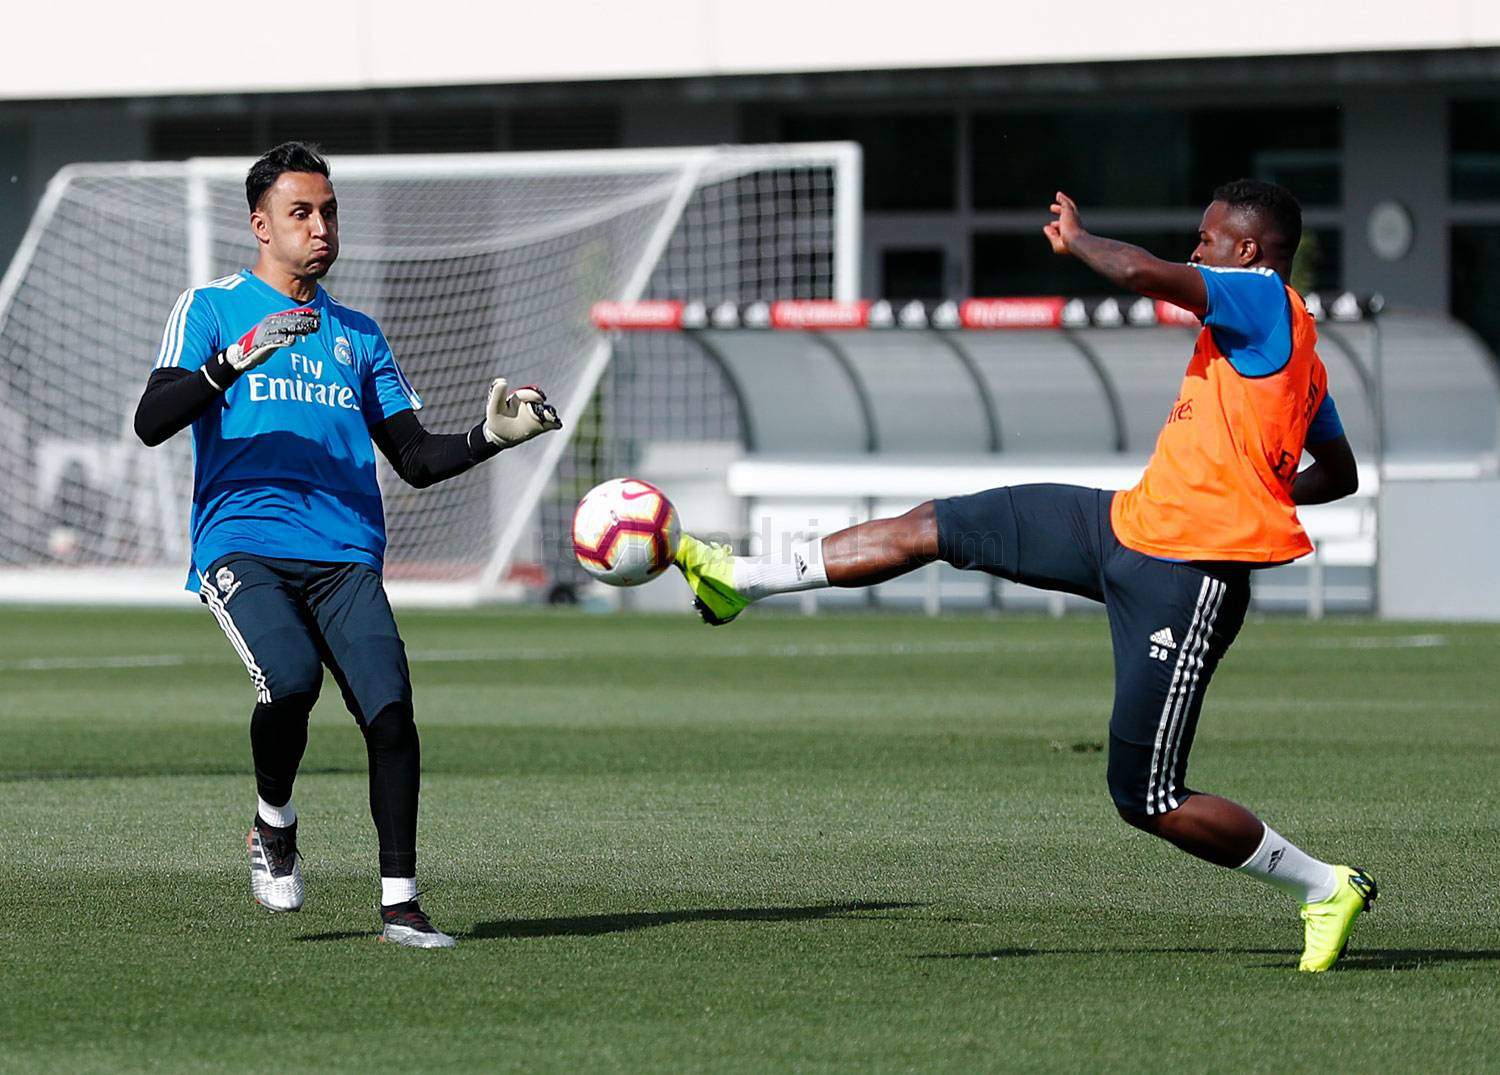 Real Madrid - Entrenamiento del Real Madrid - 07-05-2019